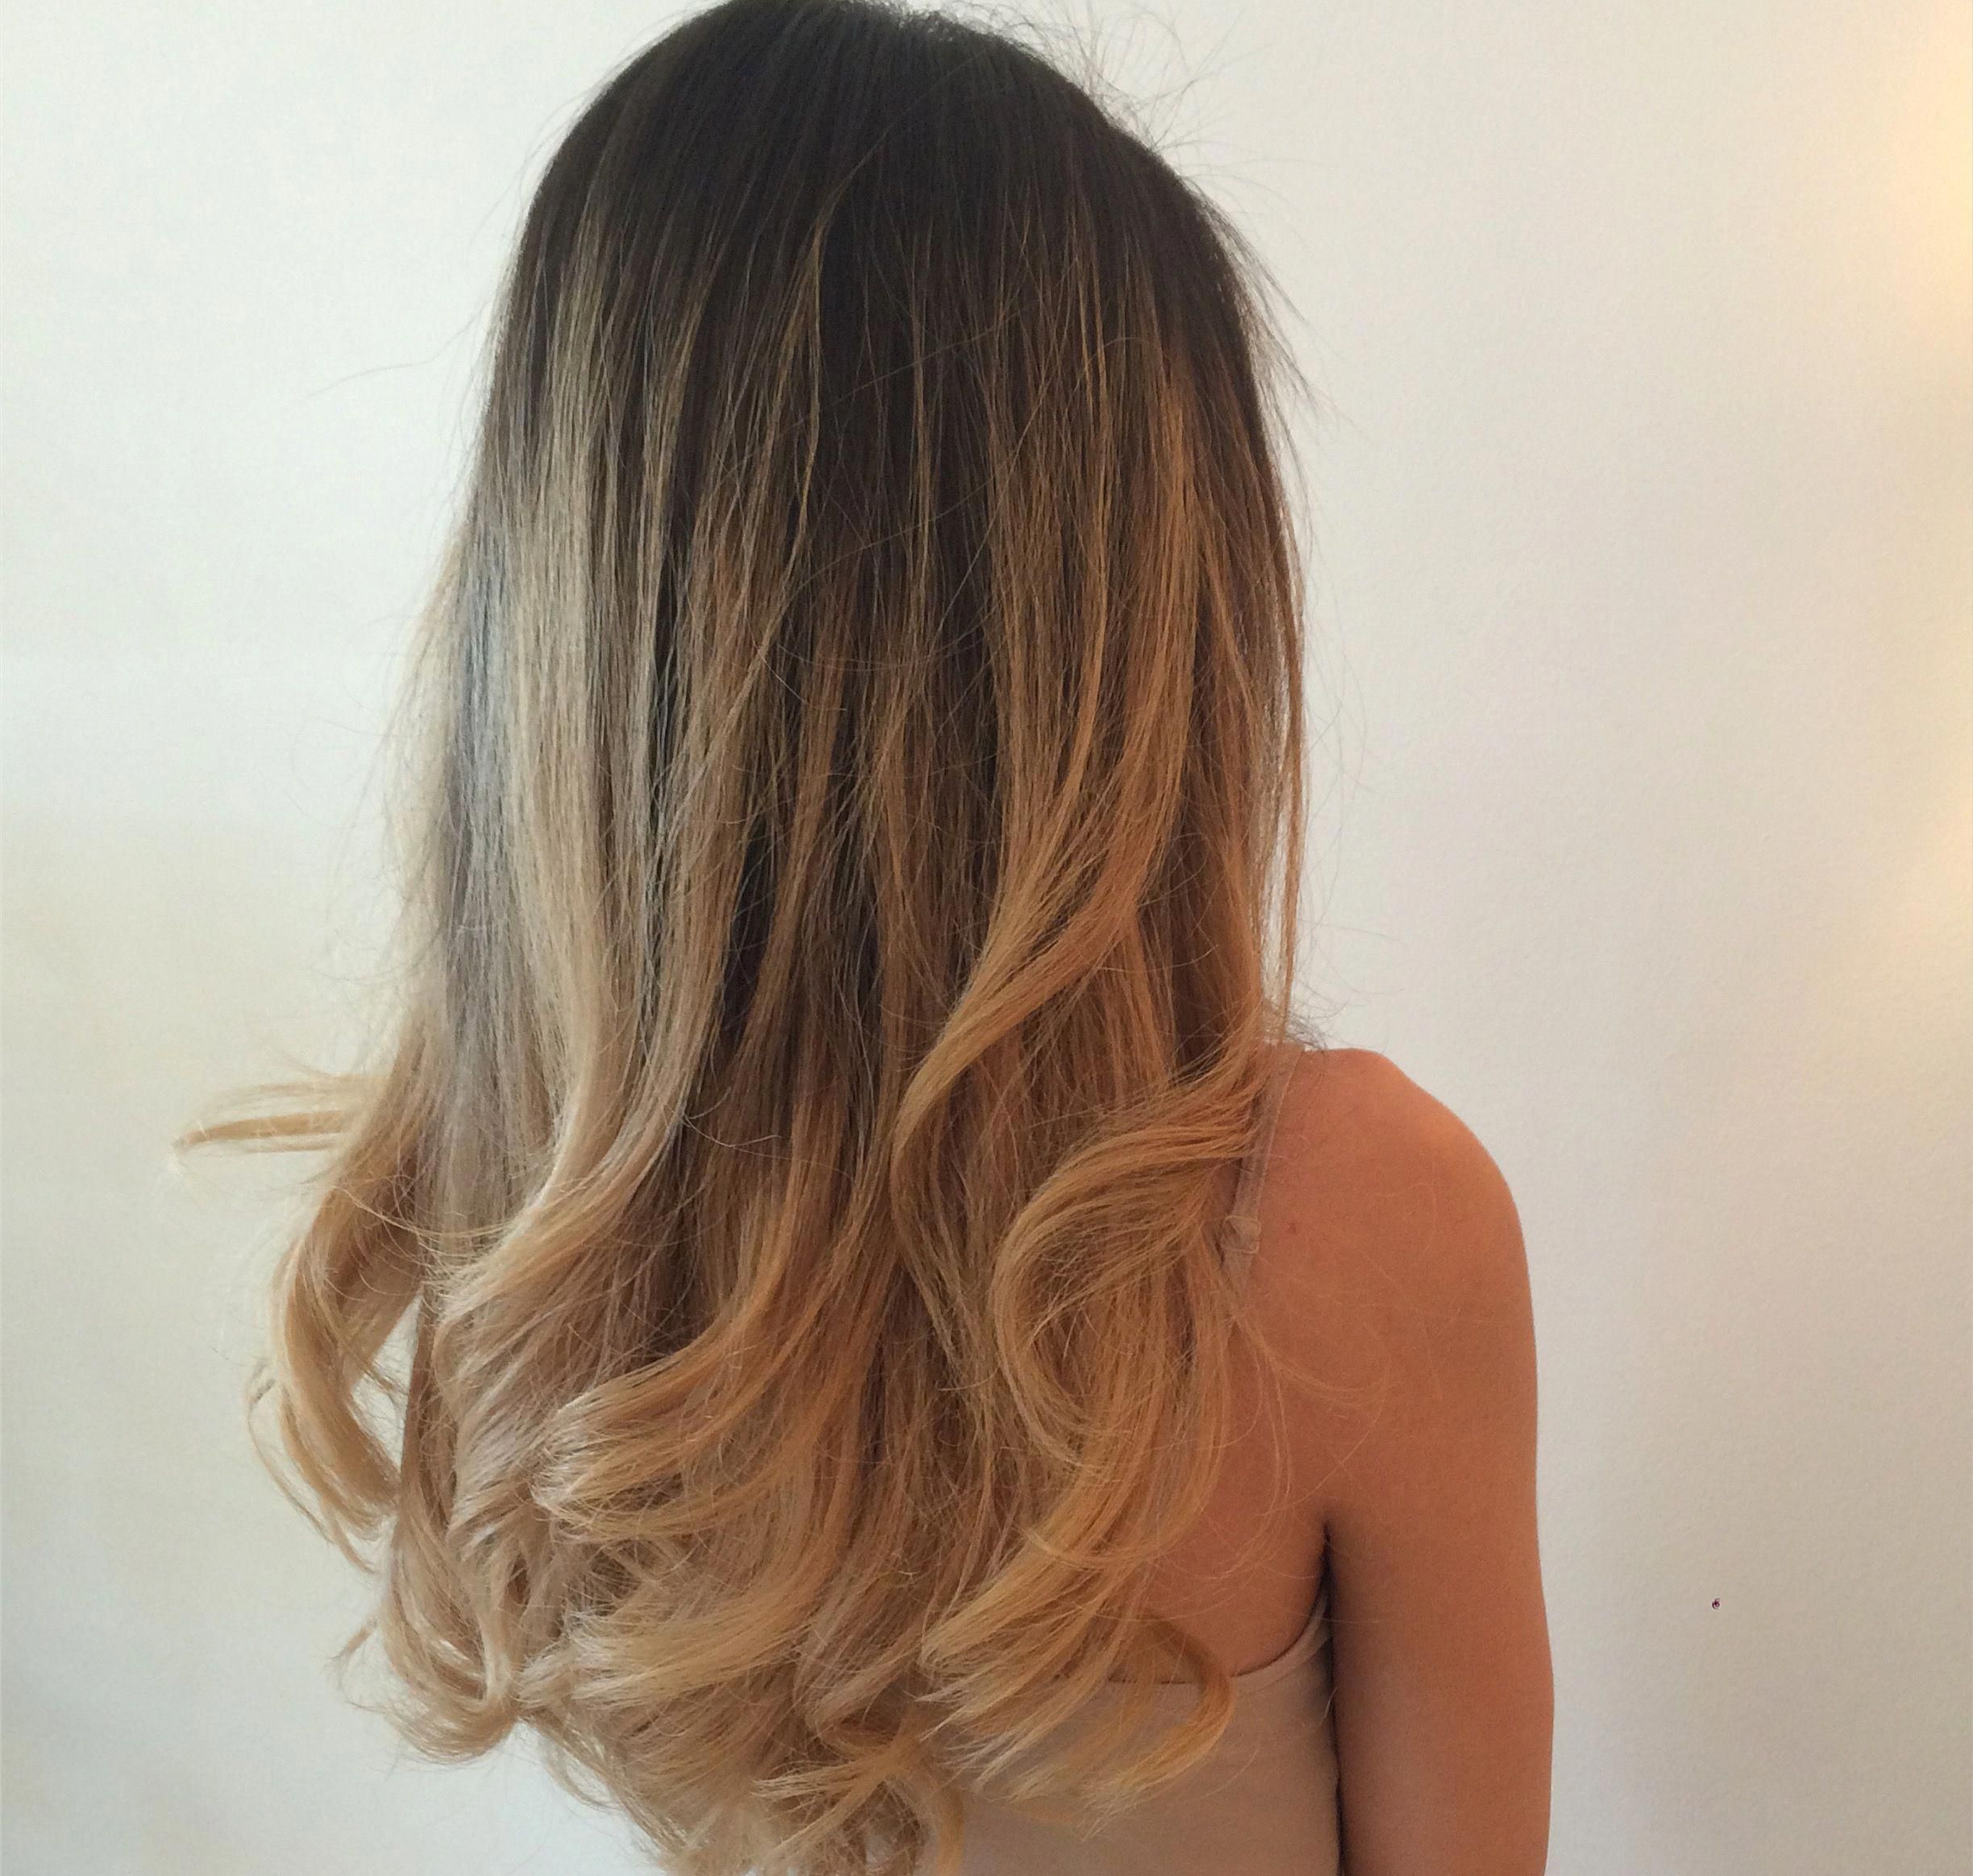 Simple Hairstyles For Long Straight Hair Curly Hairstyles For Long Hair Best Time For Hair Smoothing 20181204 Curls For Long Hair Blowout Hair Hair Styles